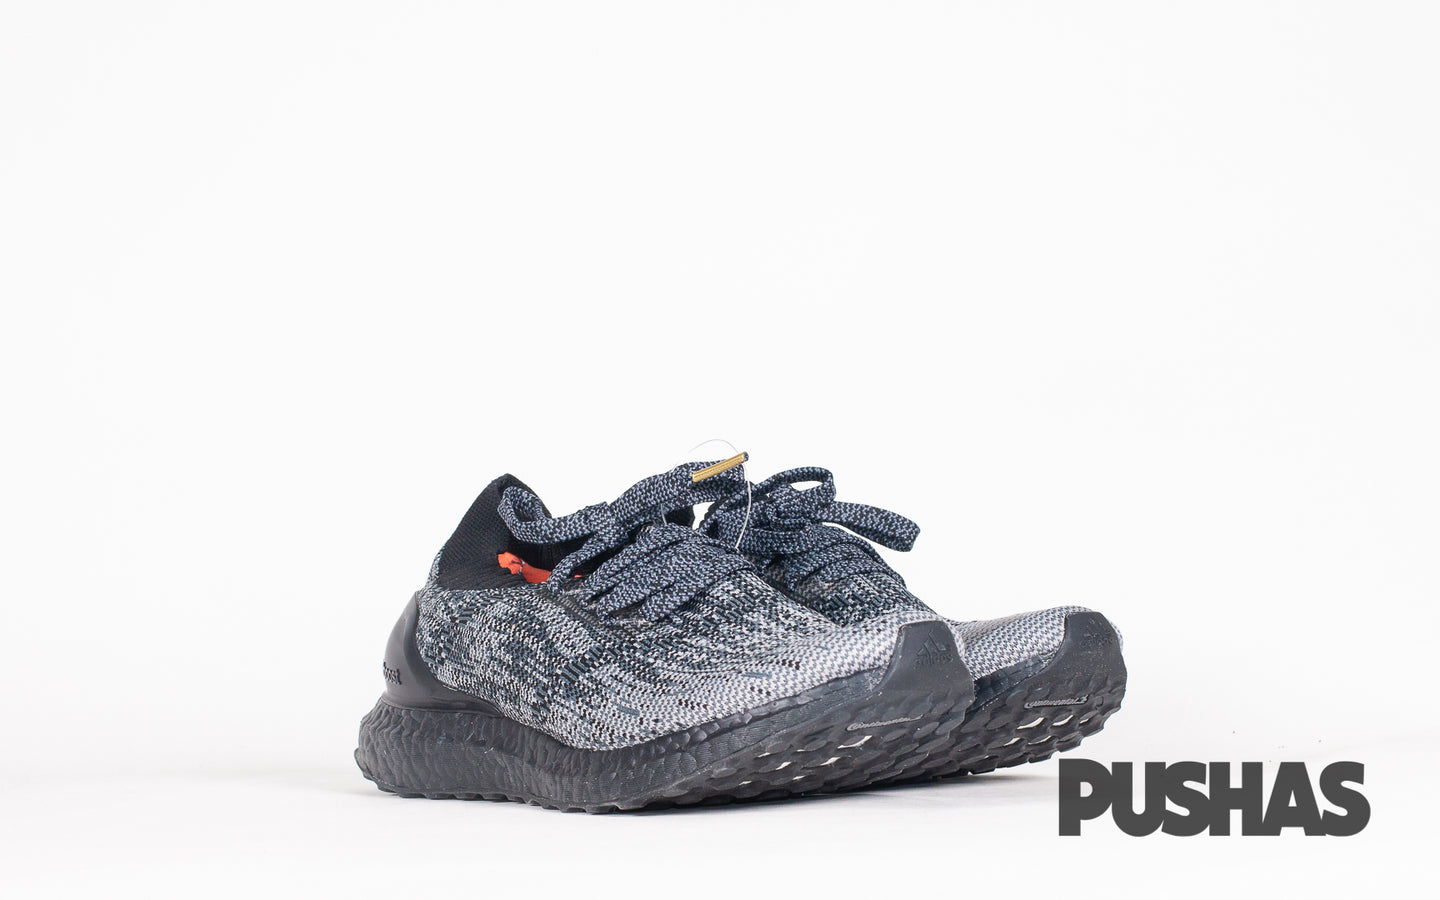 pushas-adidas-Ultraboost-Uncaged-LTD-Black-Grey